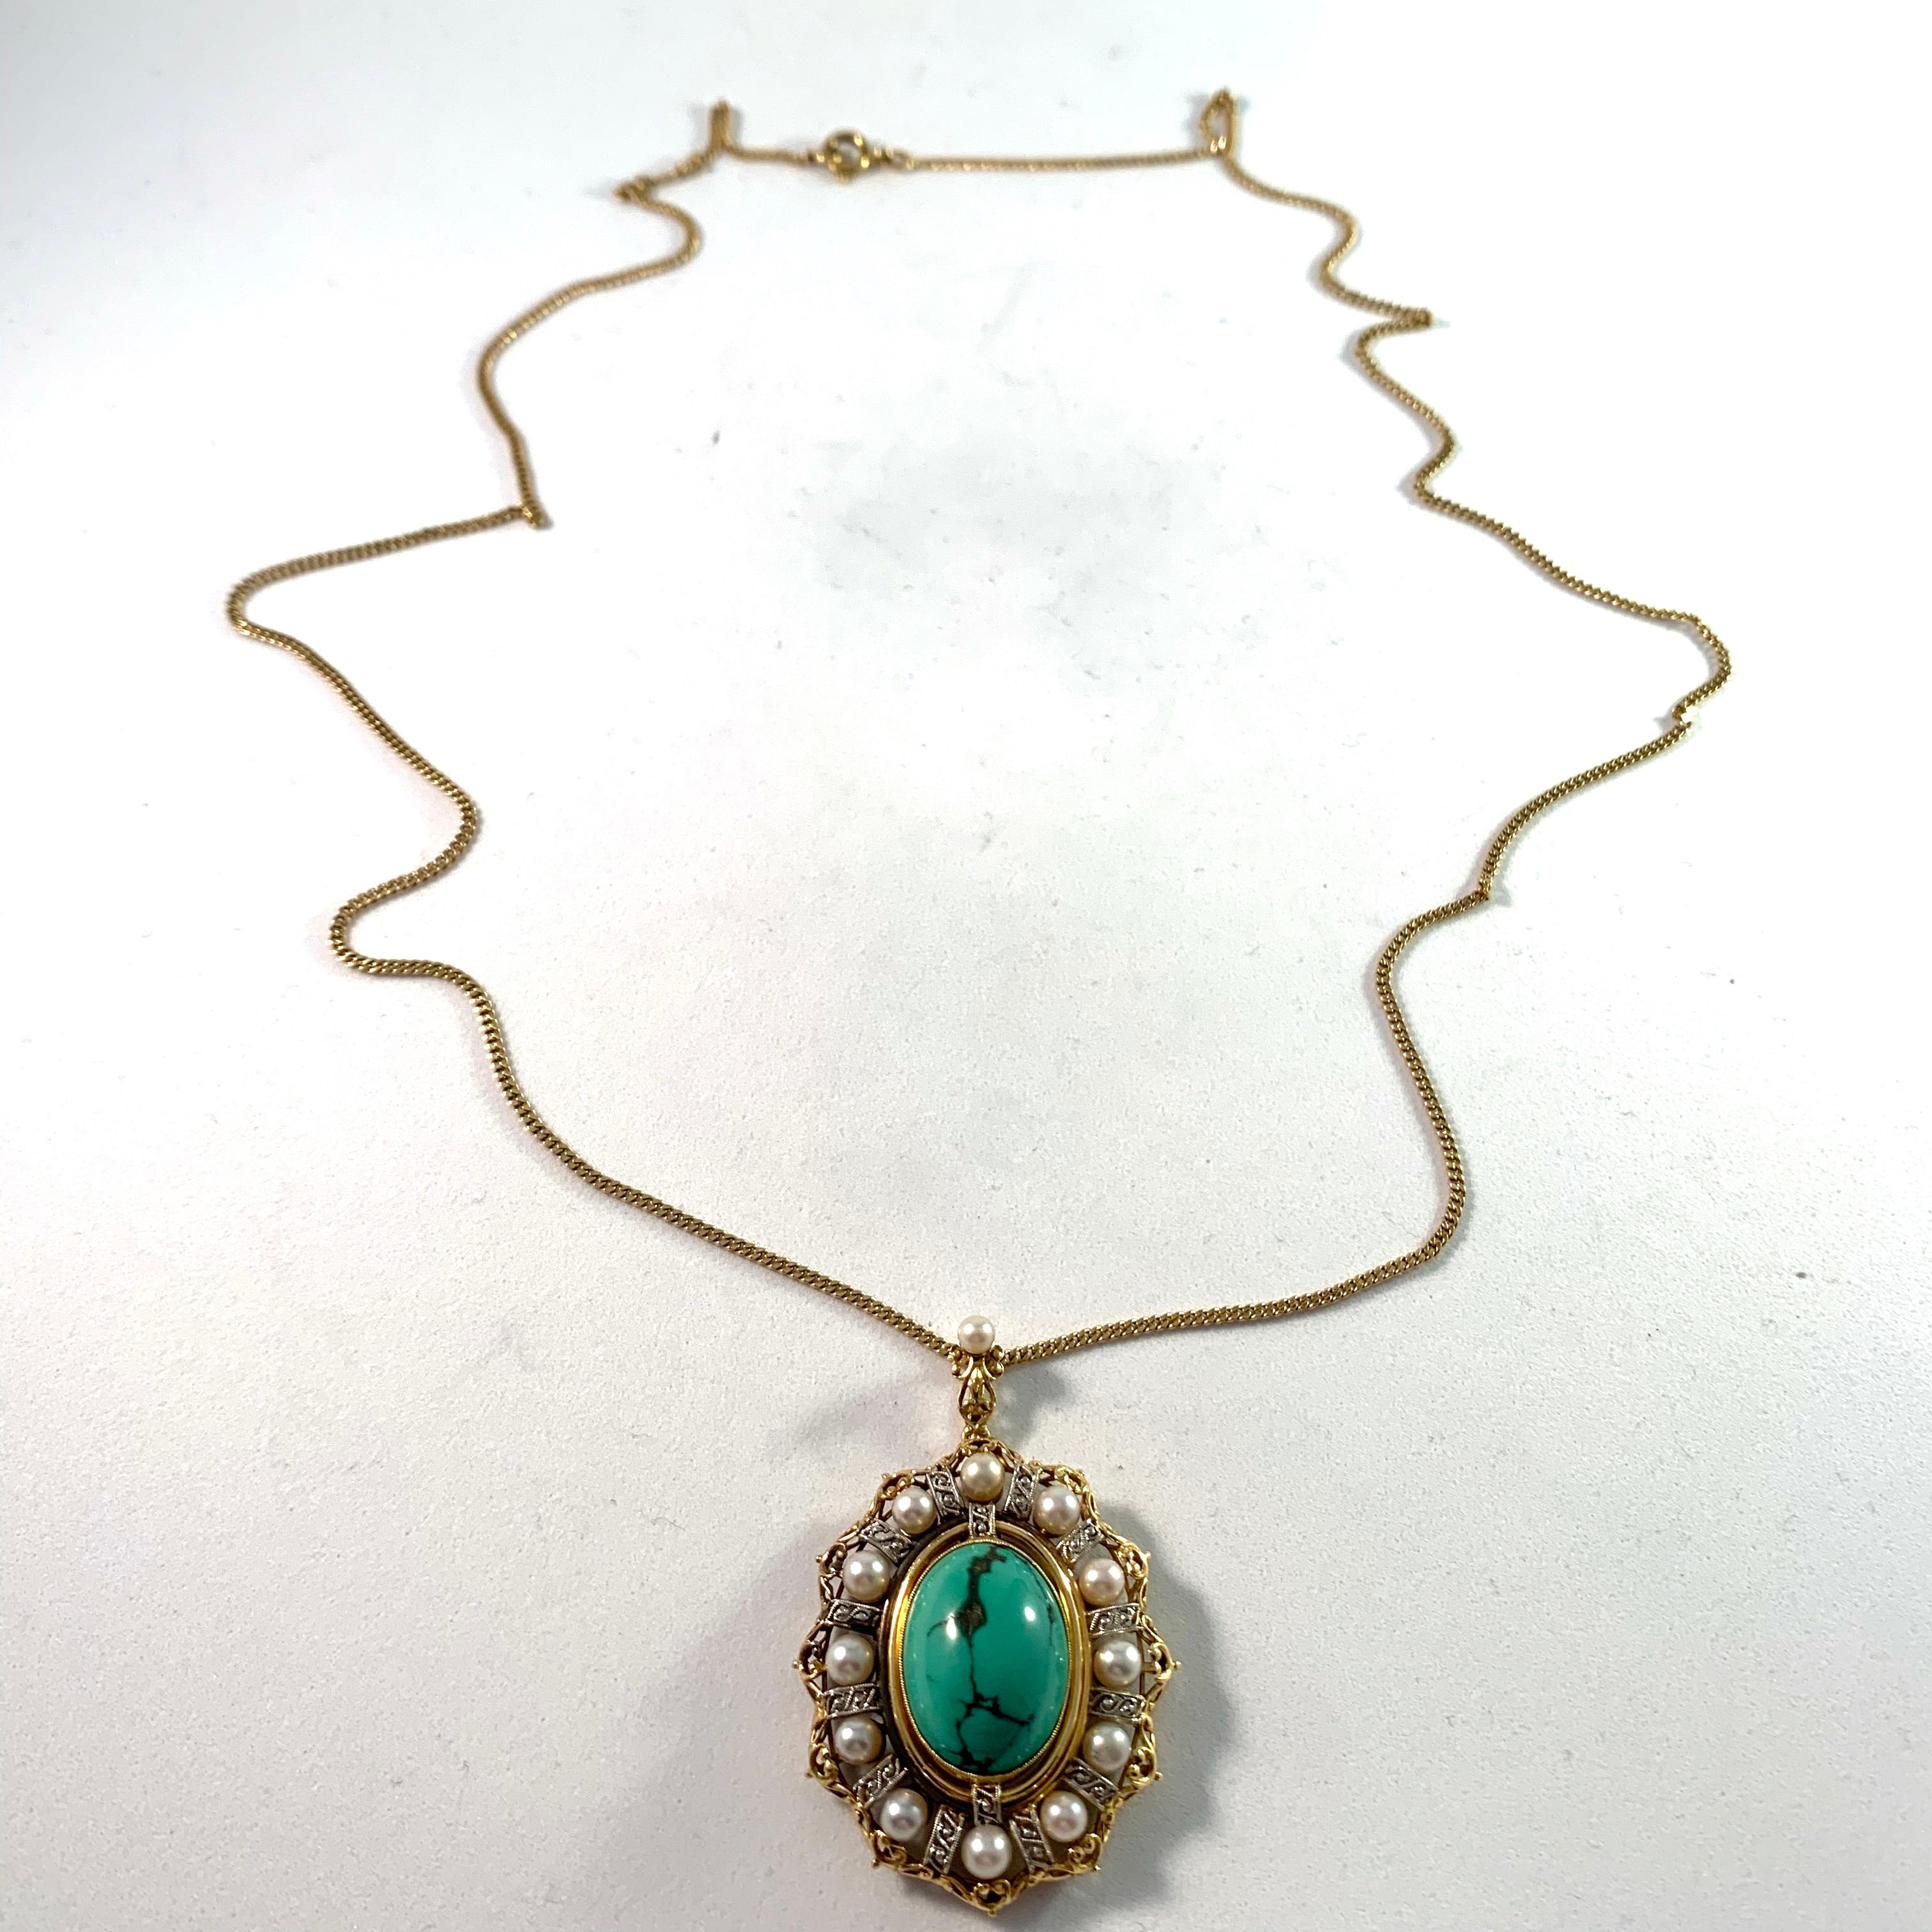 Edwardian 18k Gold Turquoise Pearl Pendant Necklace.